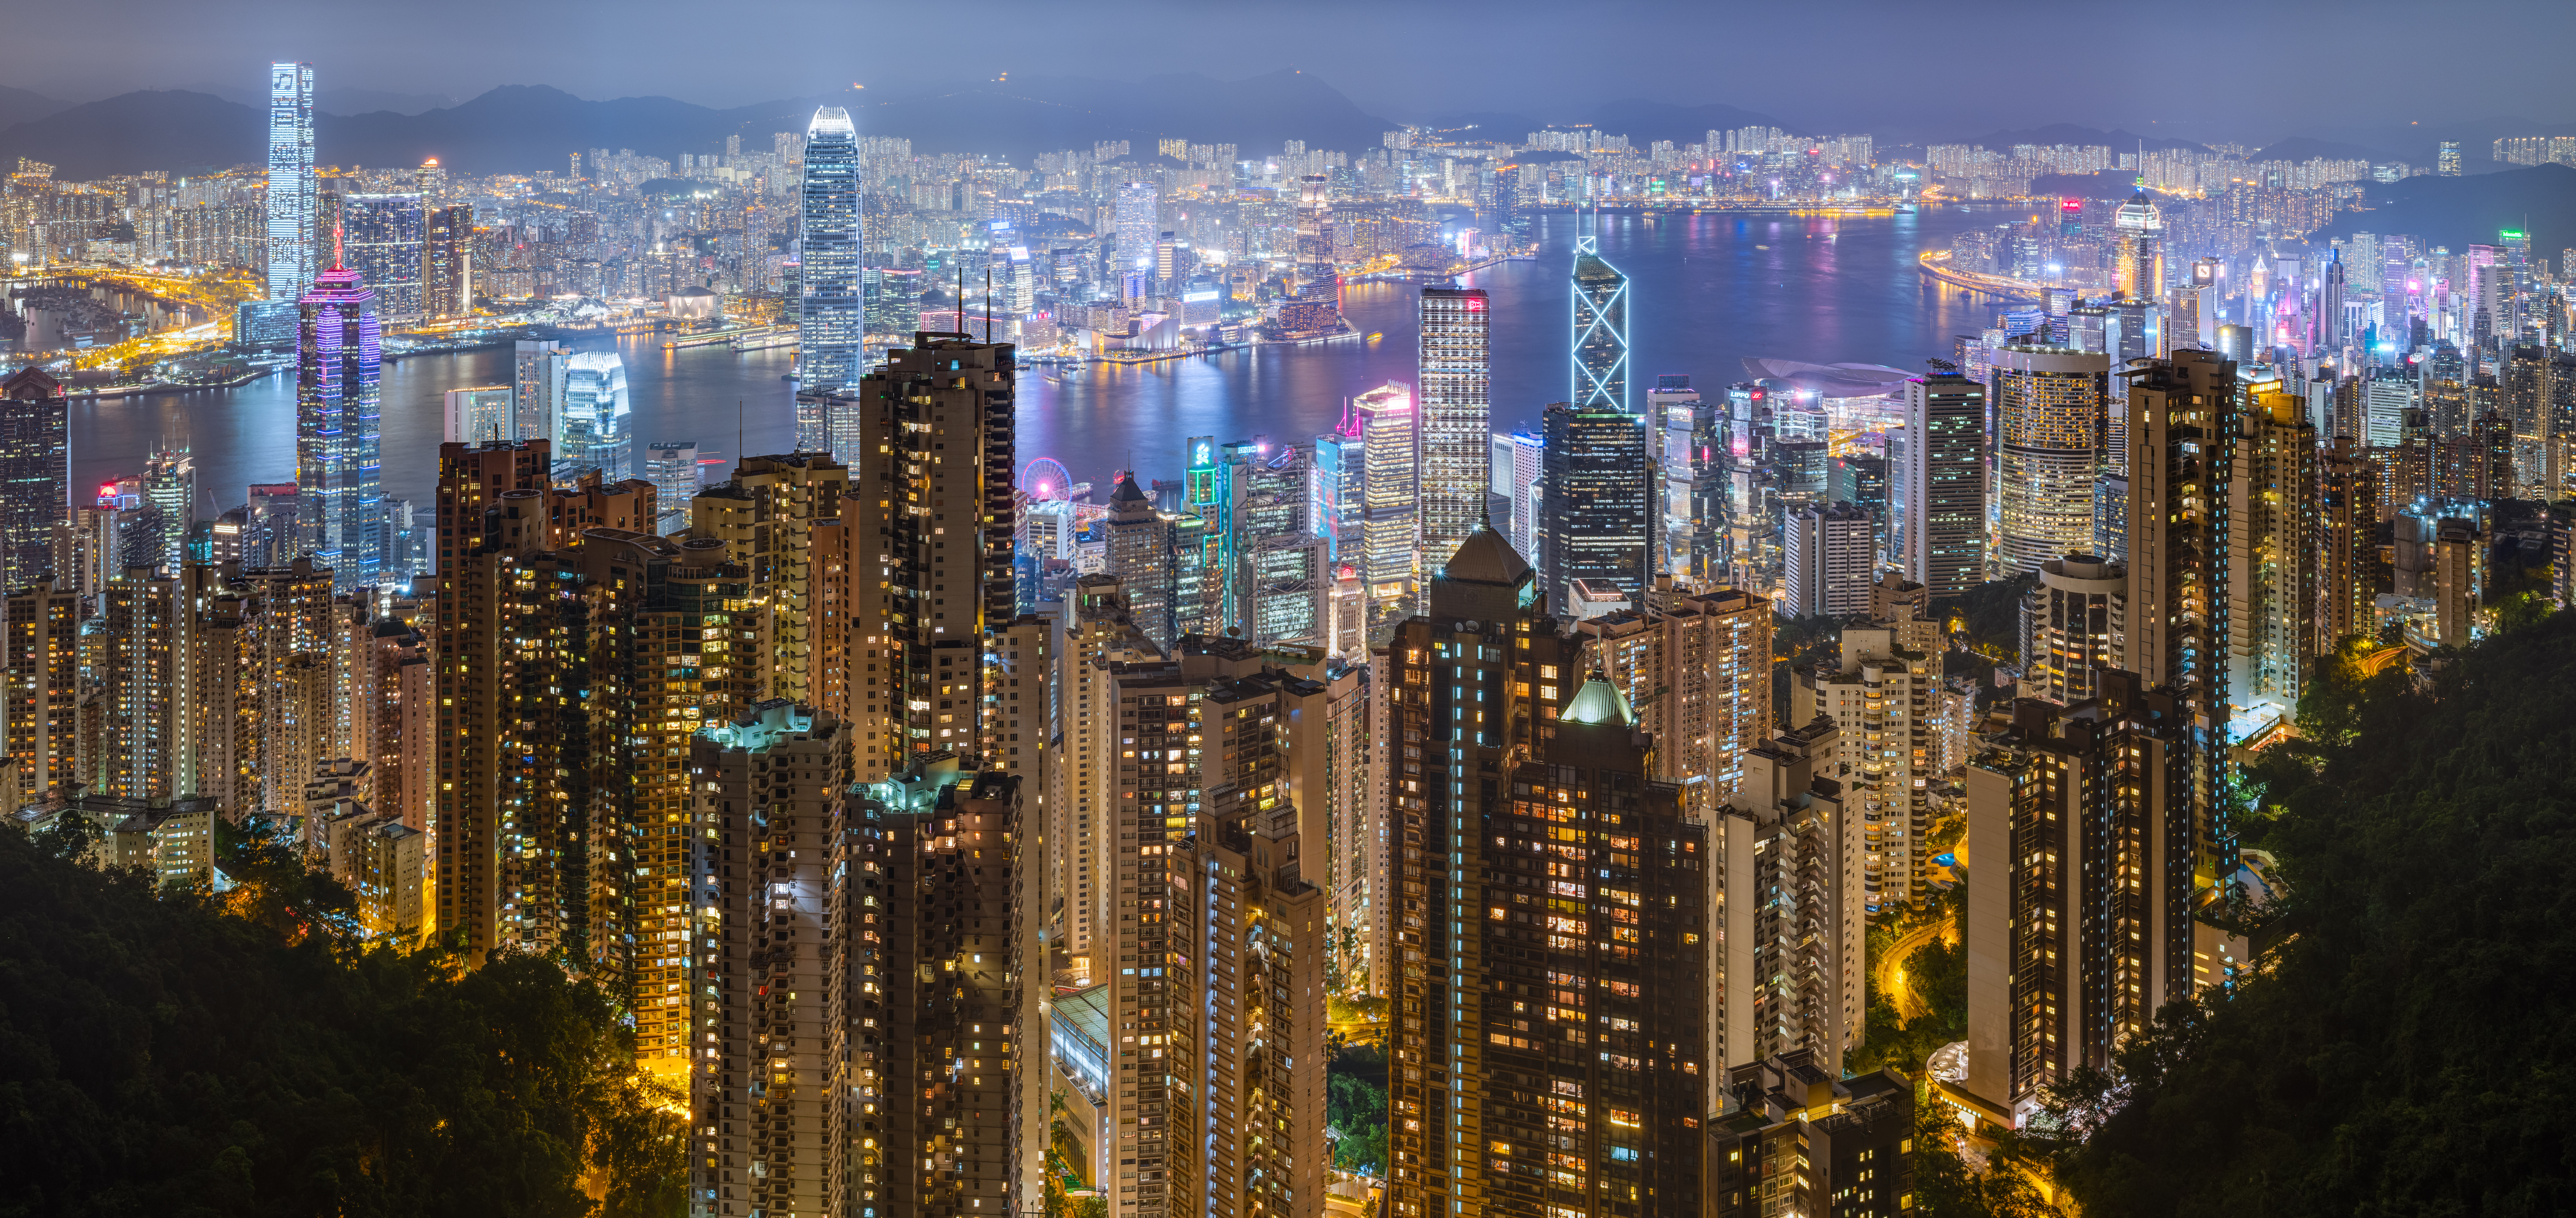 List of tallest buildings in Hong Kong - Wikipedia